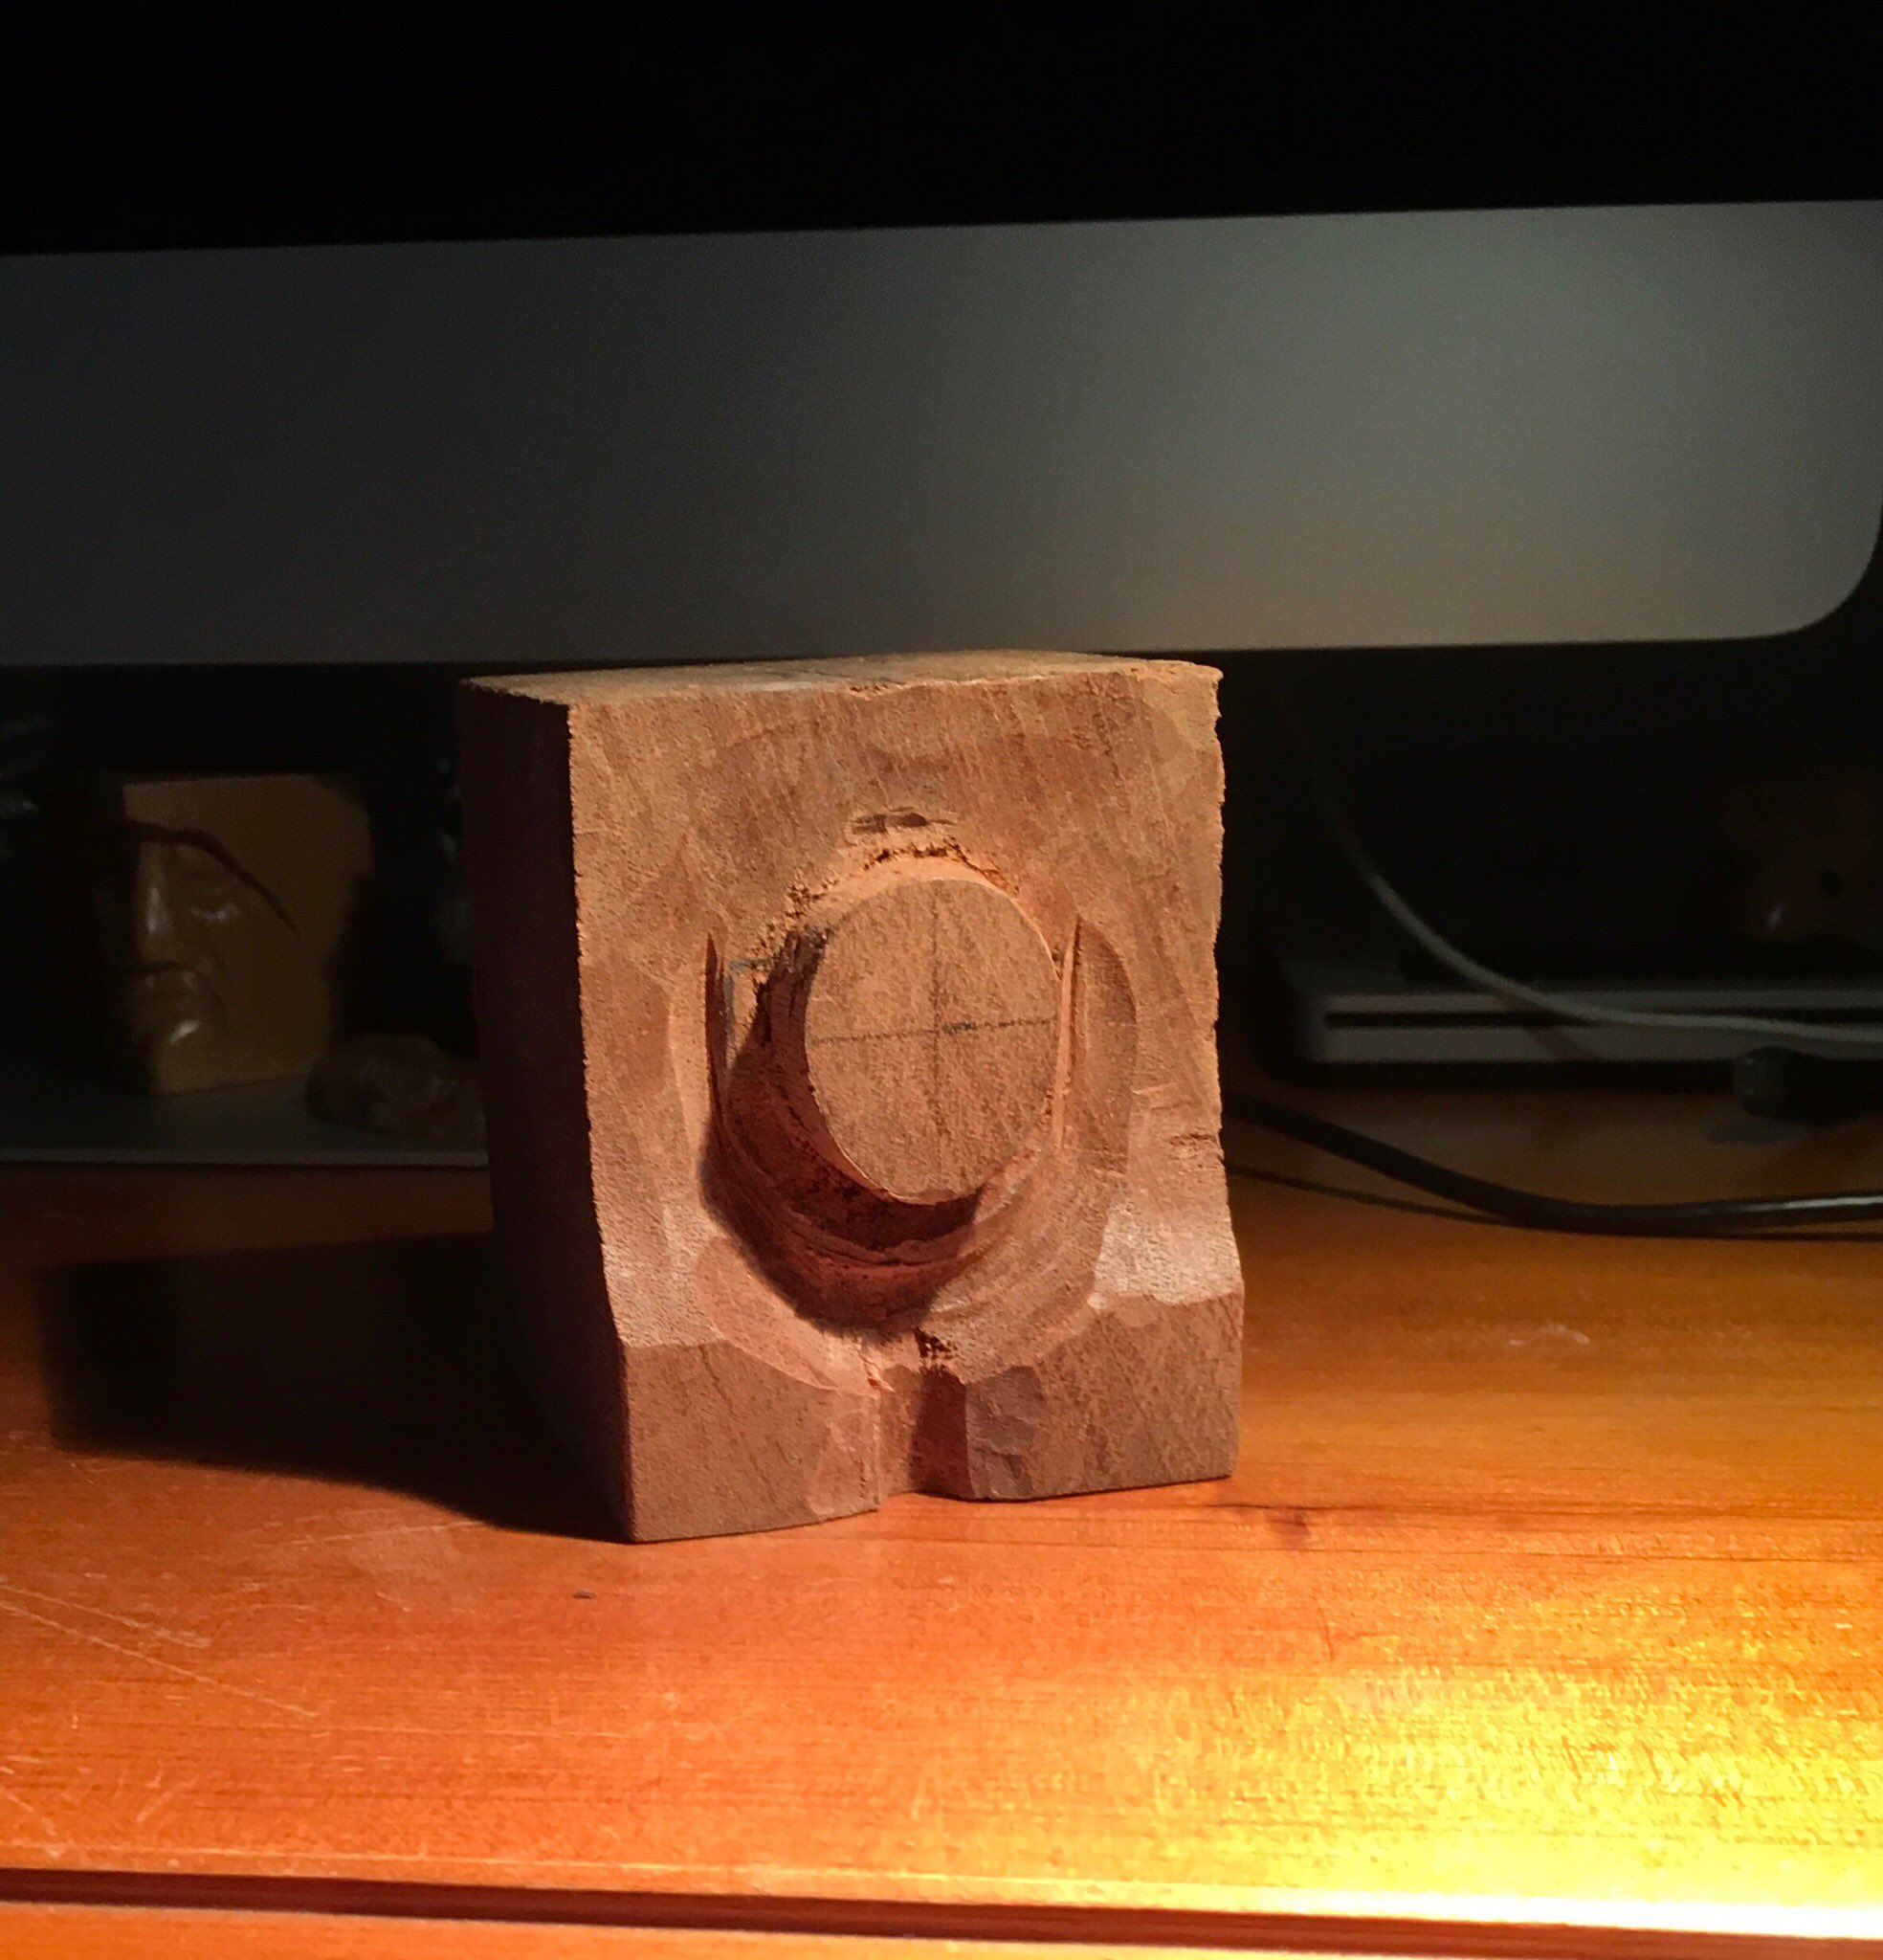 My version of the crying man (Mahogany) https://t.co/2y4cChXt5M